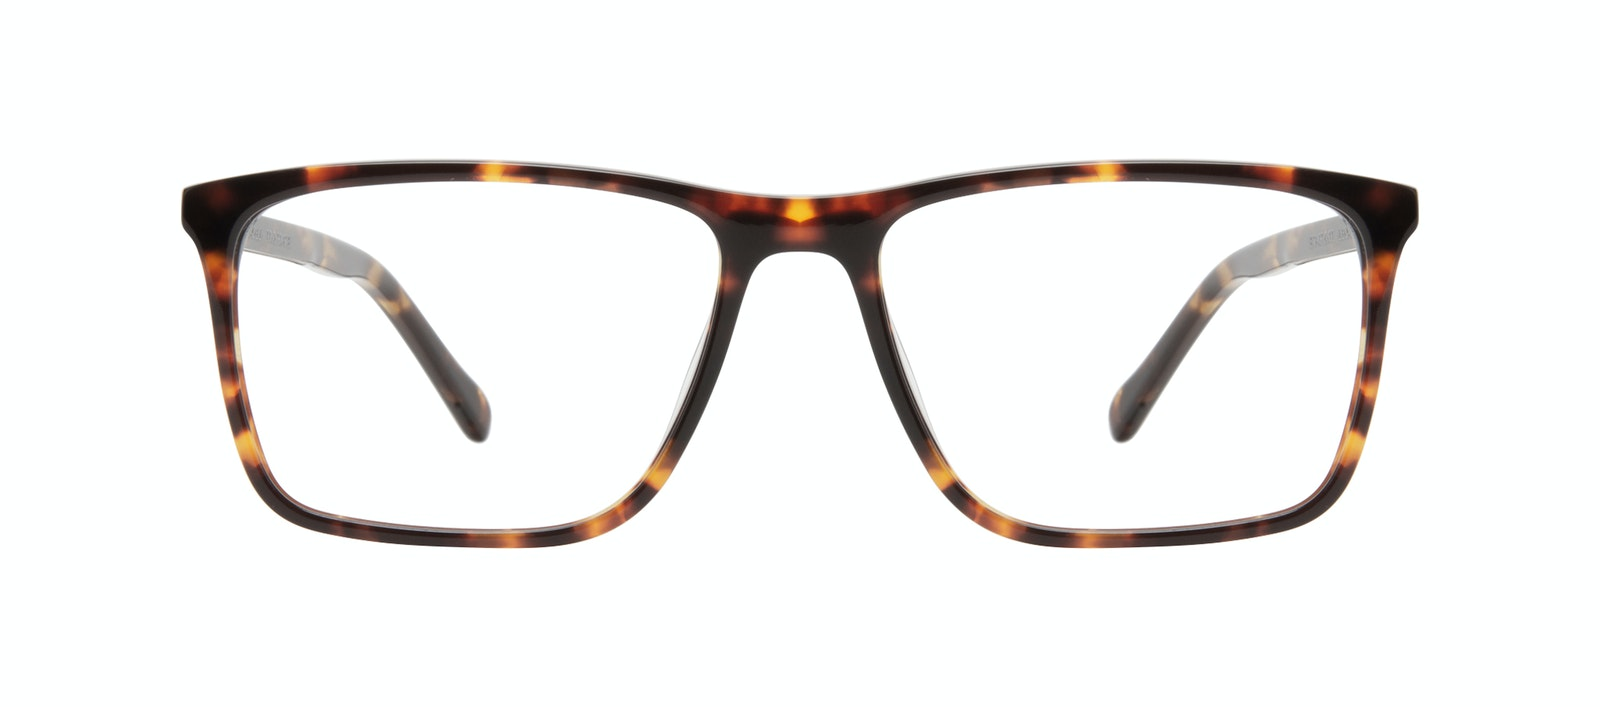 Affordable Fashion Glasses Rectangle Eyeglasses Men Skill Tortoise Front